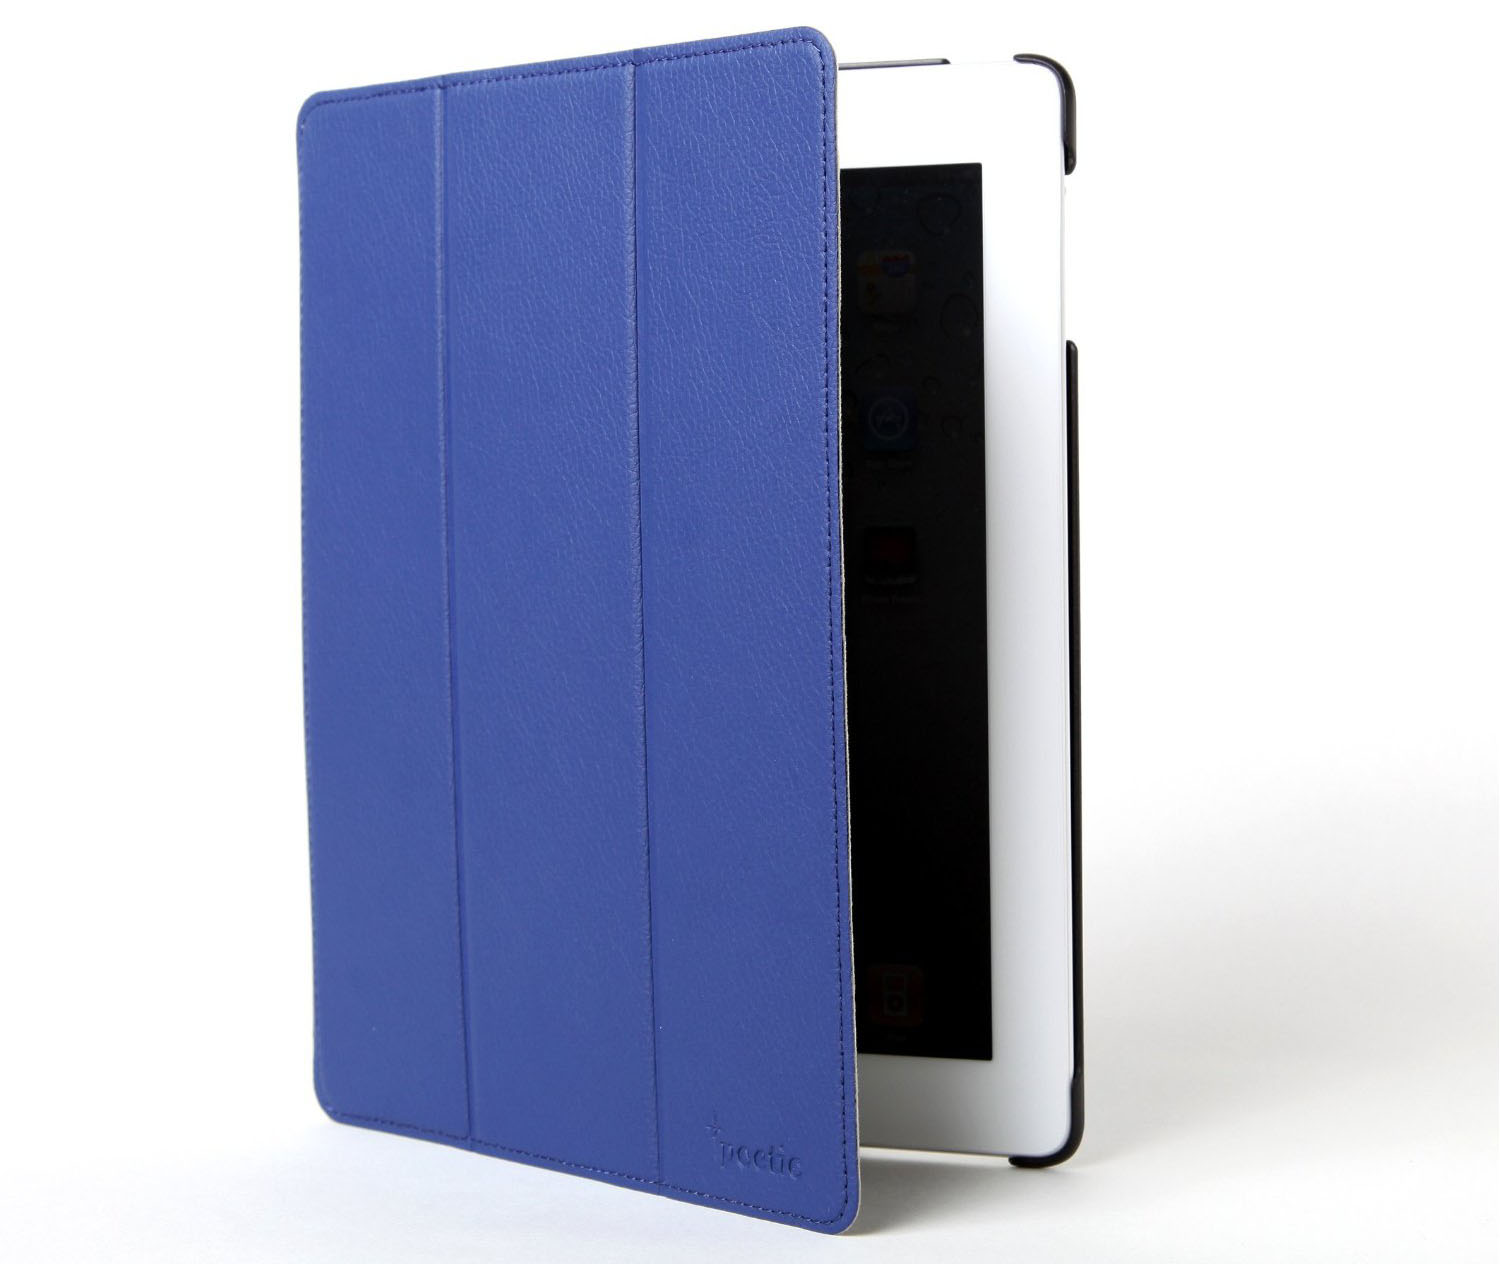 iPad-3-New-iPad-Case